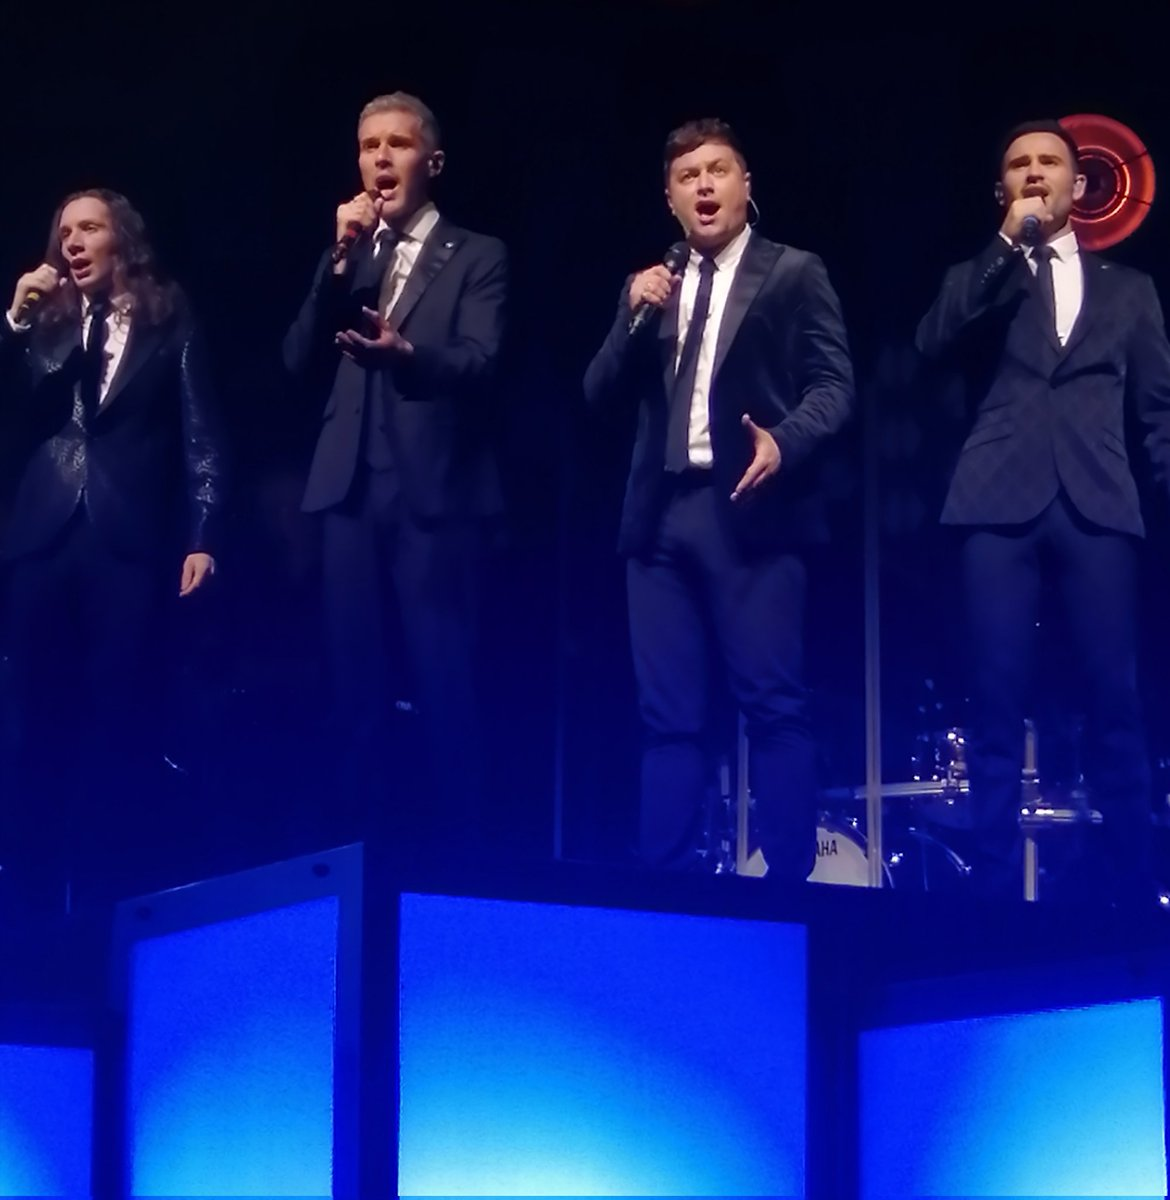 @Collabro Loving this tour. It's got to be the best yet! You had Bath rocking! Can't wait for the next one. Love you all. ❤️ ❤️ ❤️ ❤️